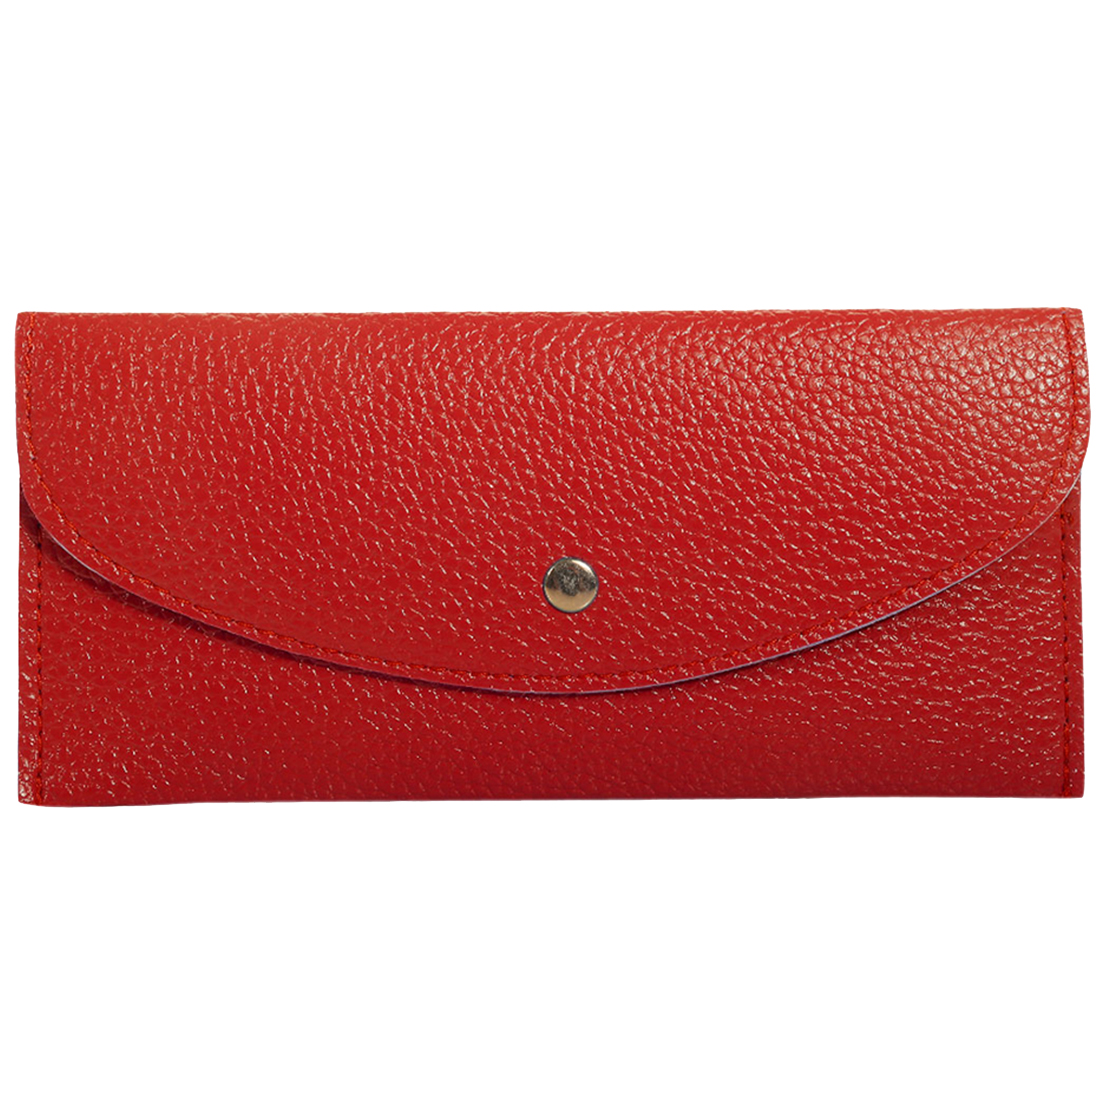 Unisex Snap-fastening Flap Simple Style Wallet Red